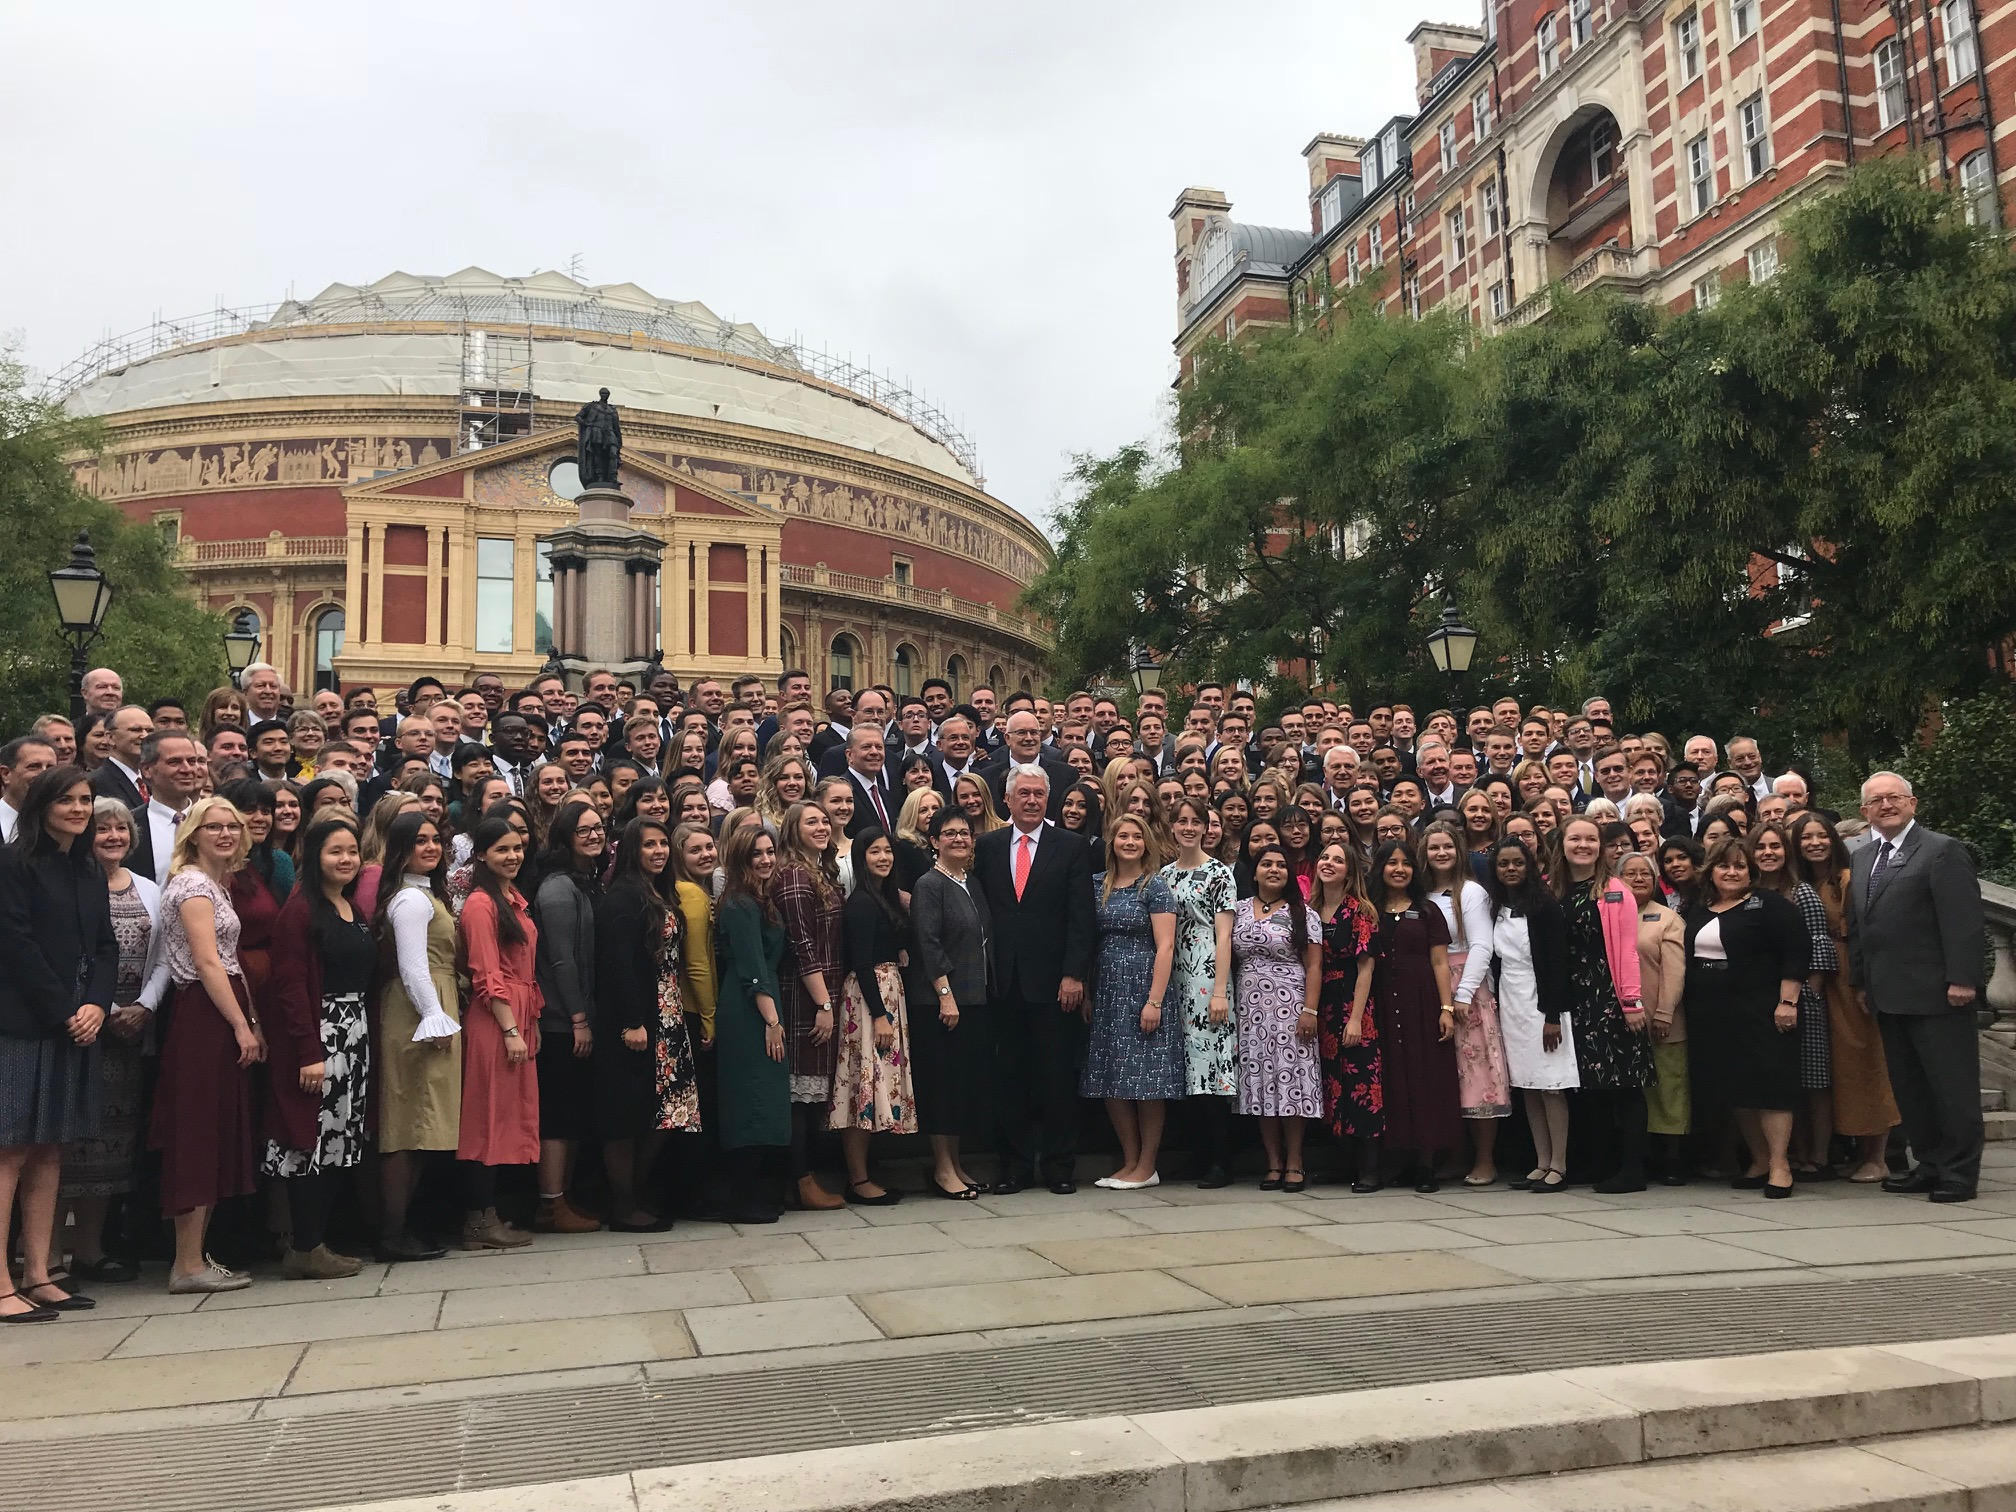 Missionaries and leaders of the England London Mission join Elder Dieter F. Uchtdorf of the Quorum of the Twelve Apostles, Sister Harriet Uchtdorf and other visiting general authorities for a mission photo outside London's Royal Albert Hall on Sept. 8, 2018.